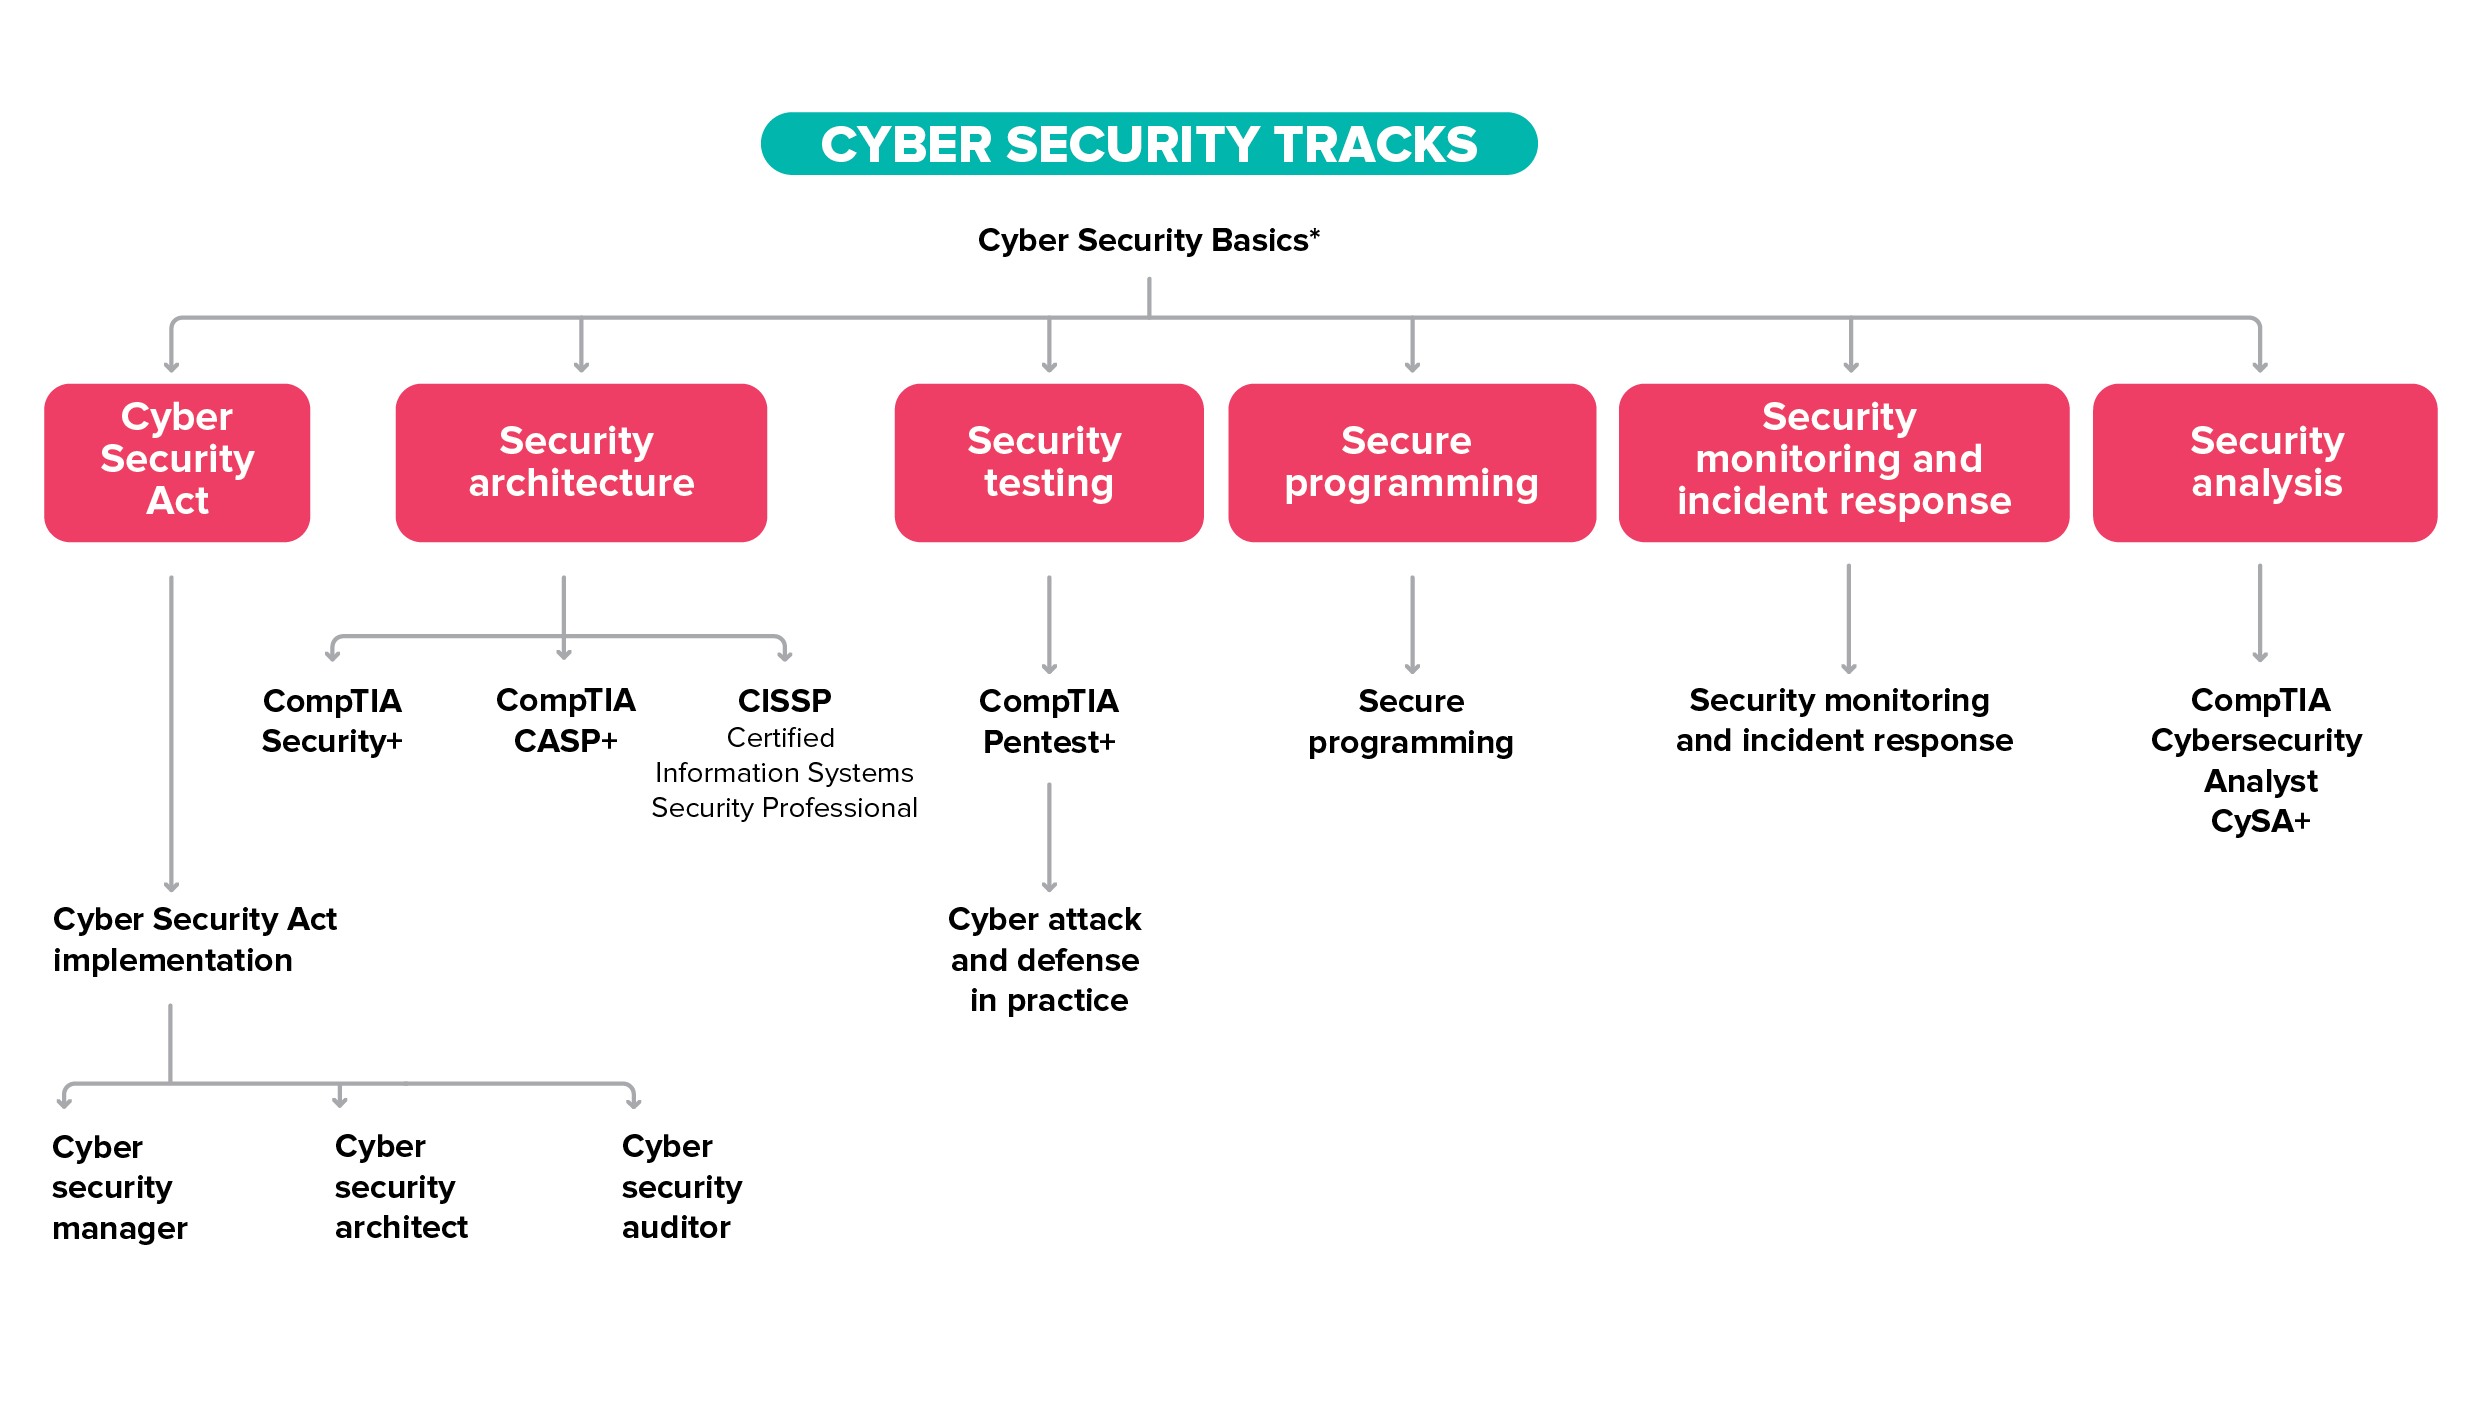 cyber security tracks